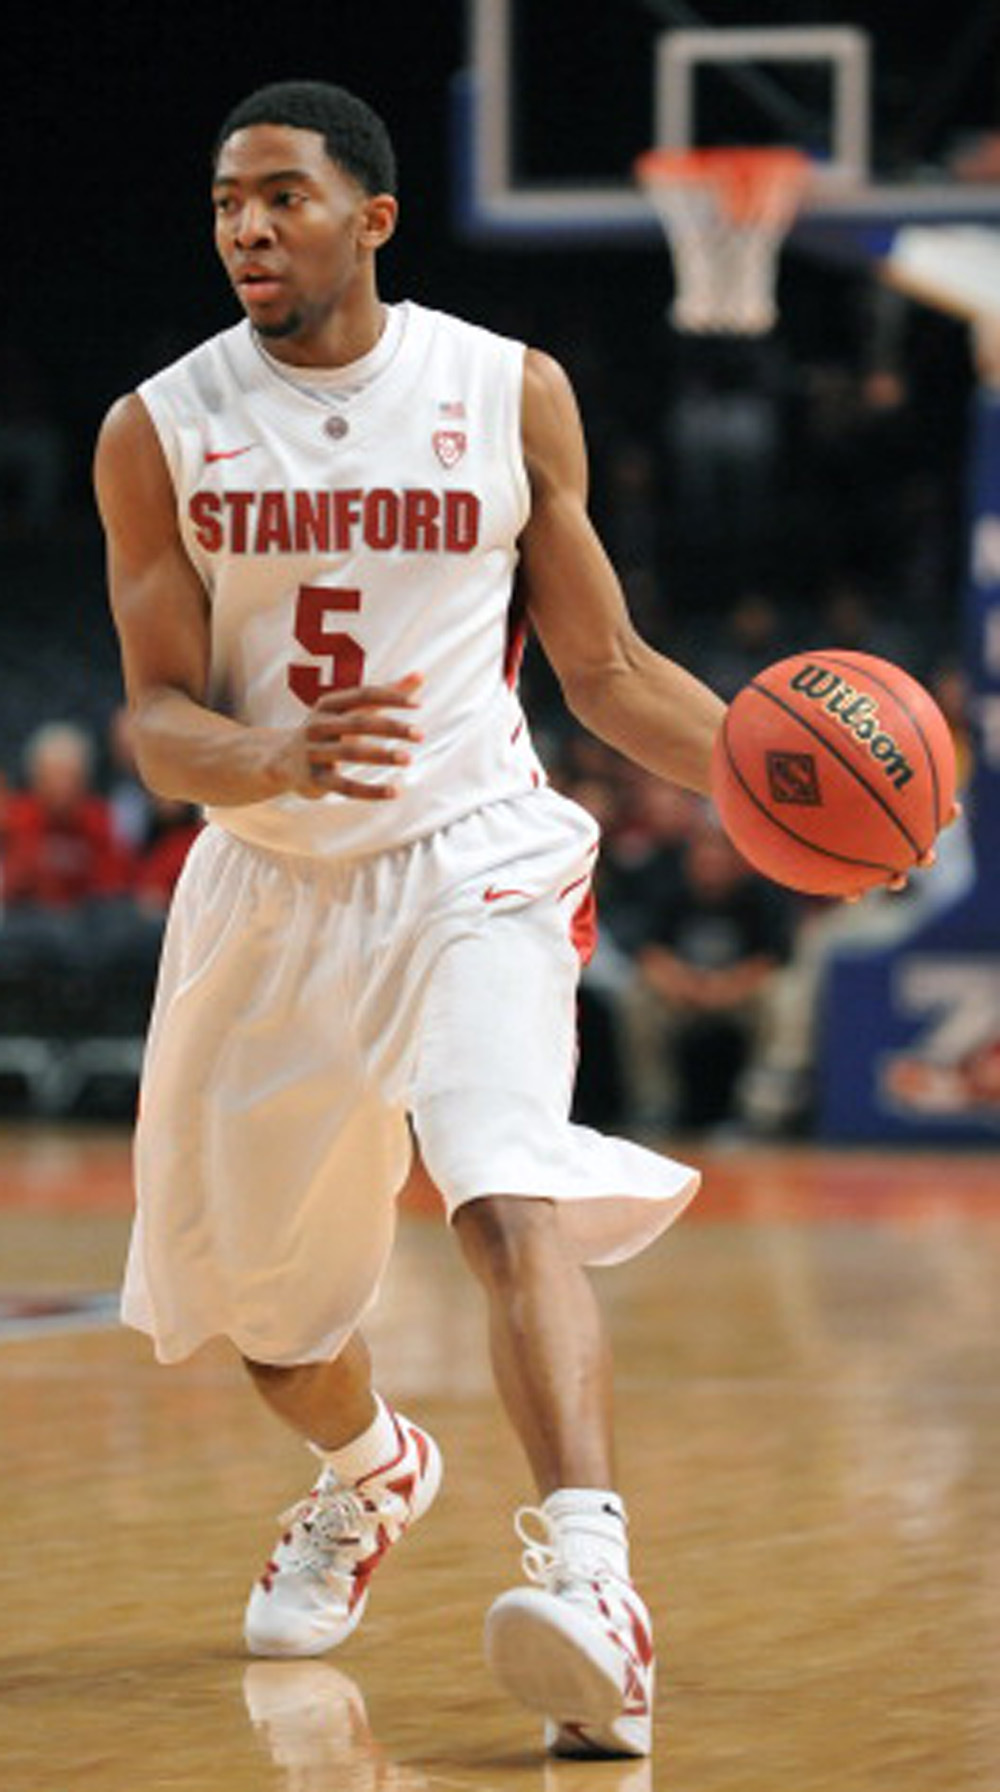 96. Chasson Randle, Stanford